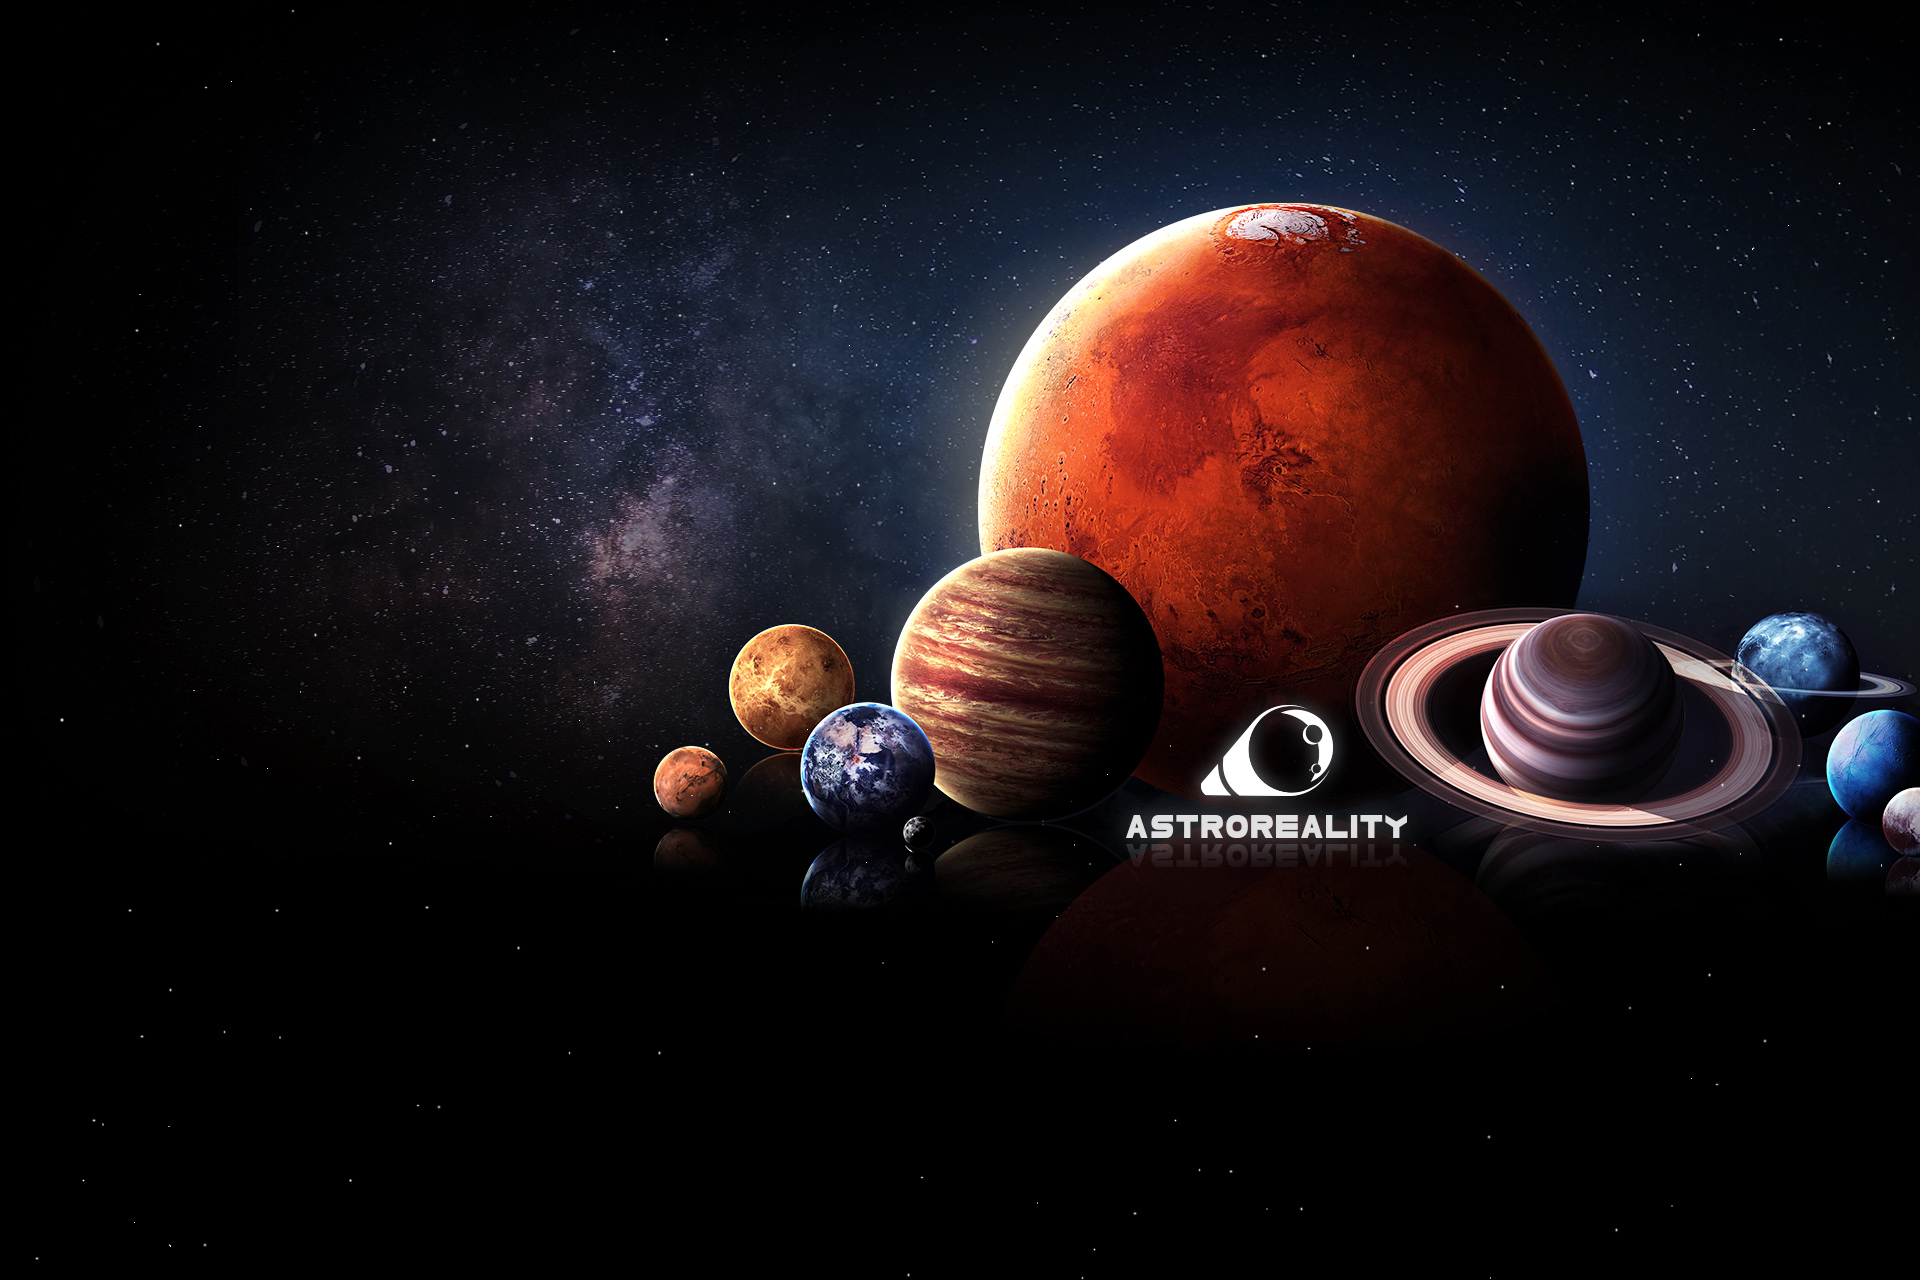 Astronomy meets<br/>Mixed Reality